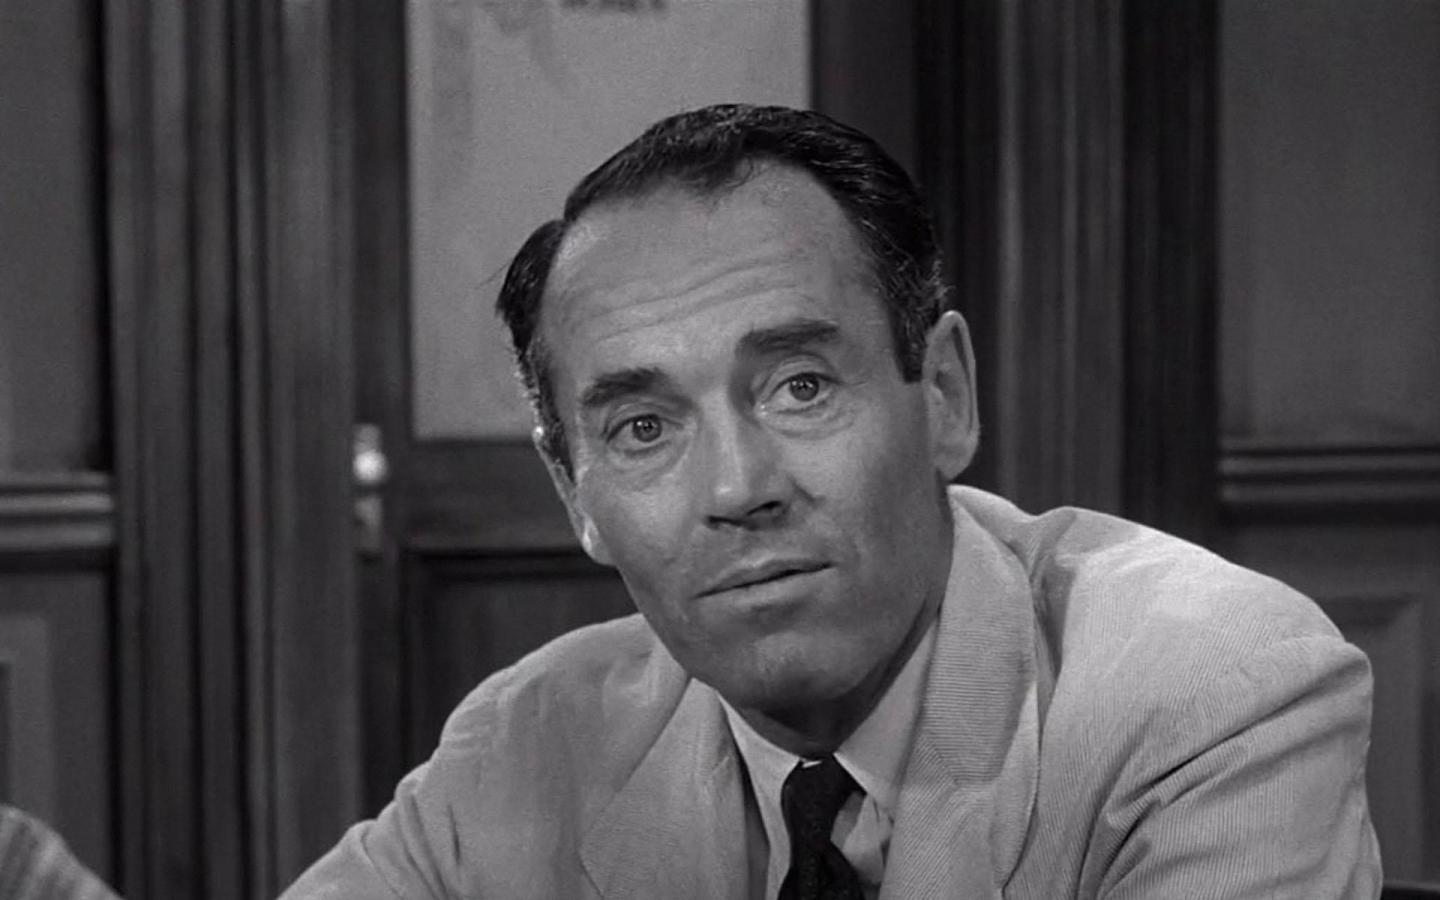 12 angry men was henry Release date: 1957 length: 96 min rating: not rated categories: drama cast: henry fonda, lee j cobb, martin balsam the defense and the prosecution have rested and.